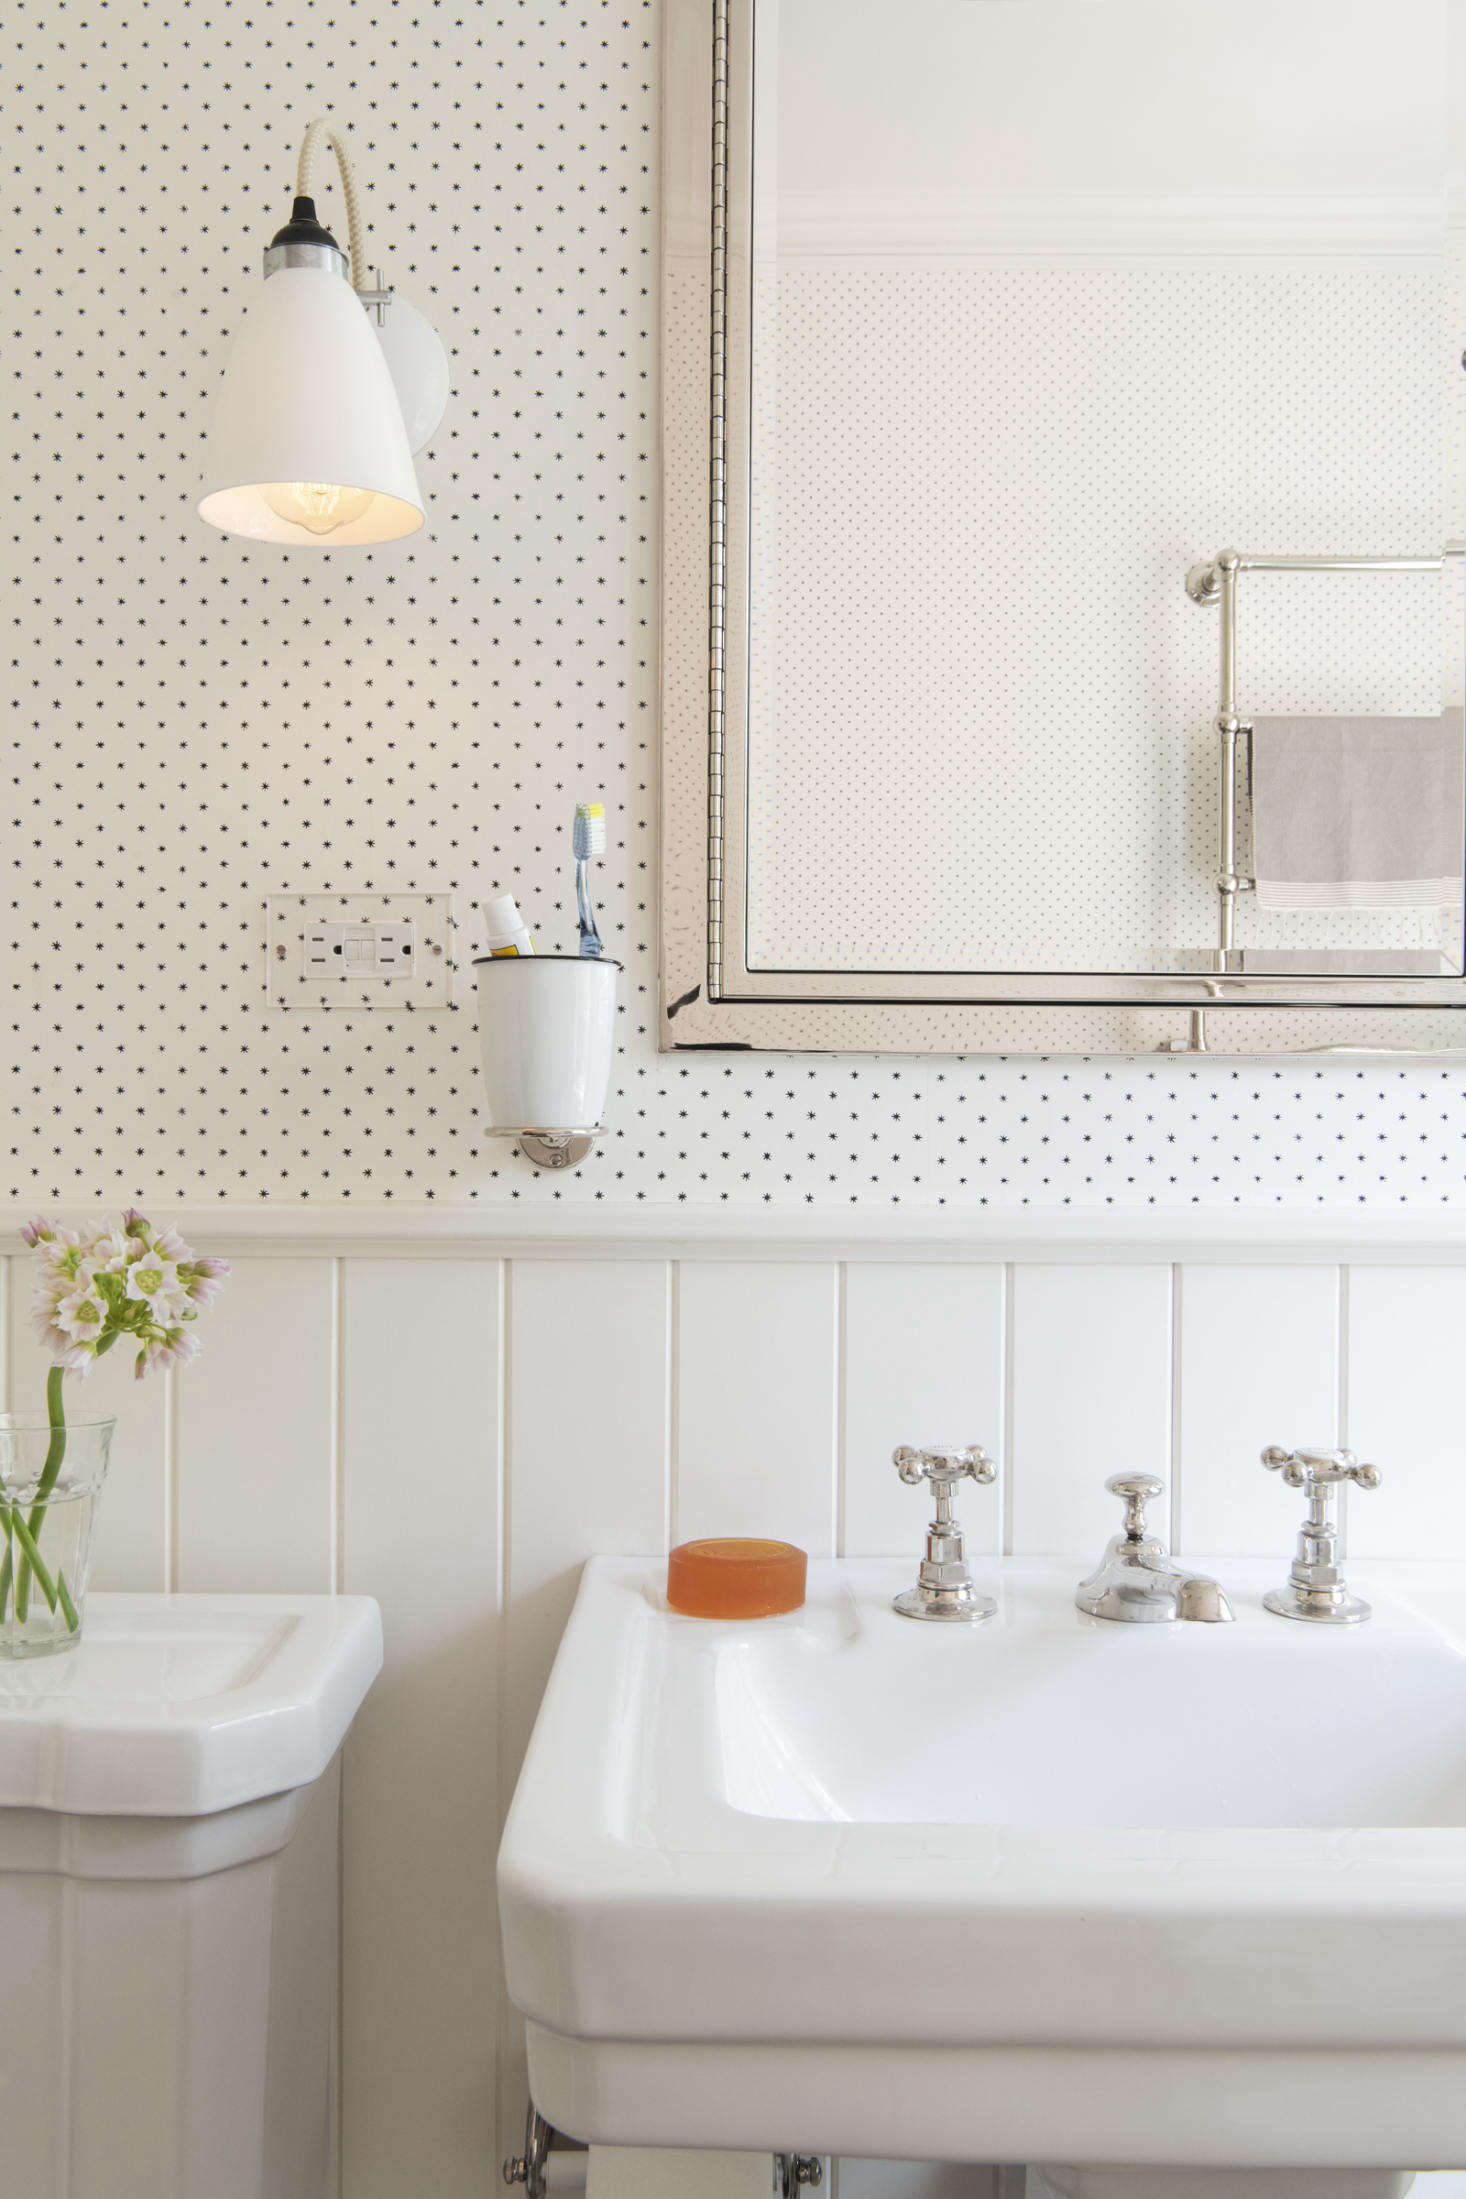 The room is papered with Lee, a tiny star pattern from Hinson. The pedestal sink is the Richmond from St. Thomas Creations. The nickel faucets are Barber Wilsons—part of the owners order placed in London.